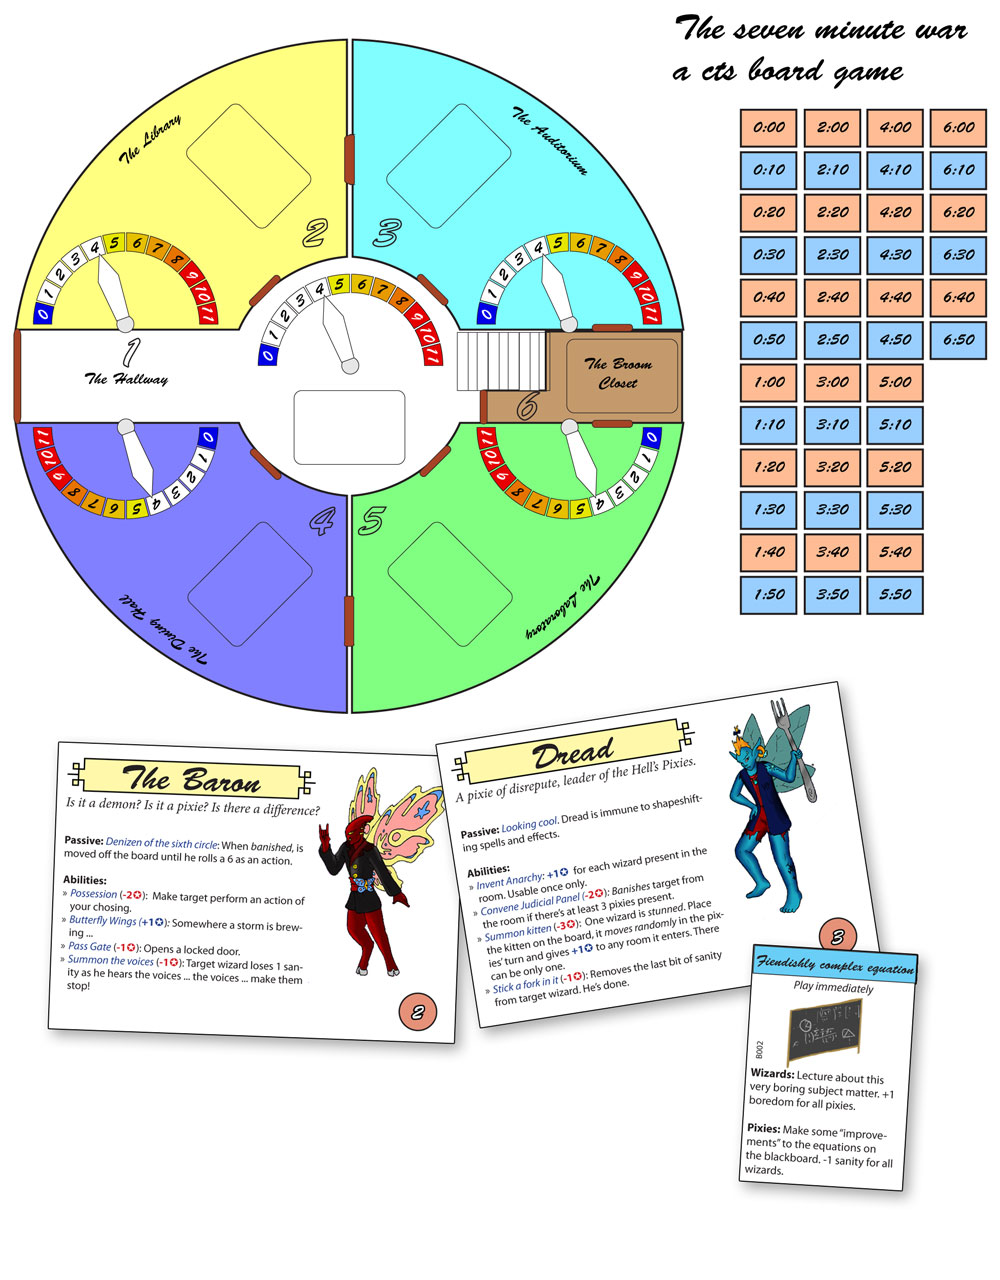 Filler: The seven minute war board game